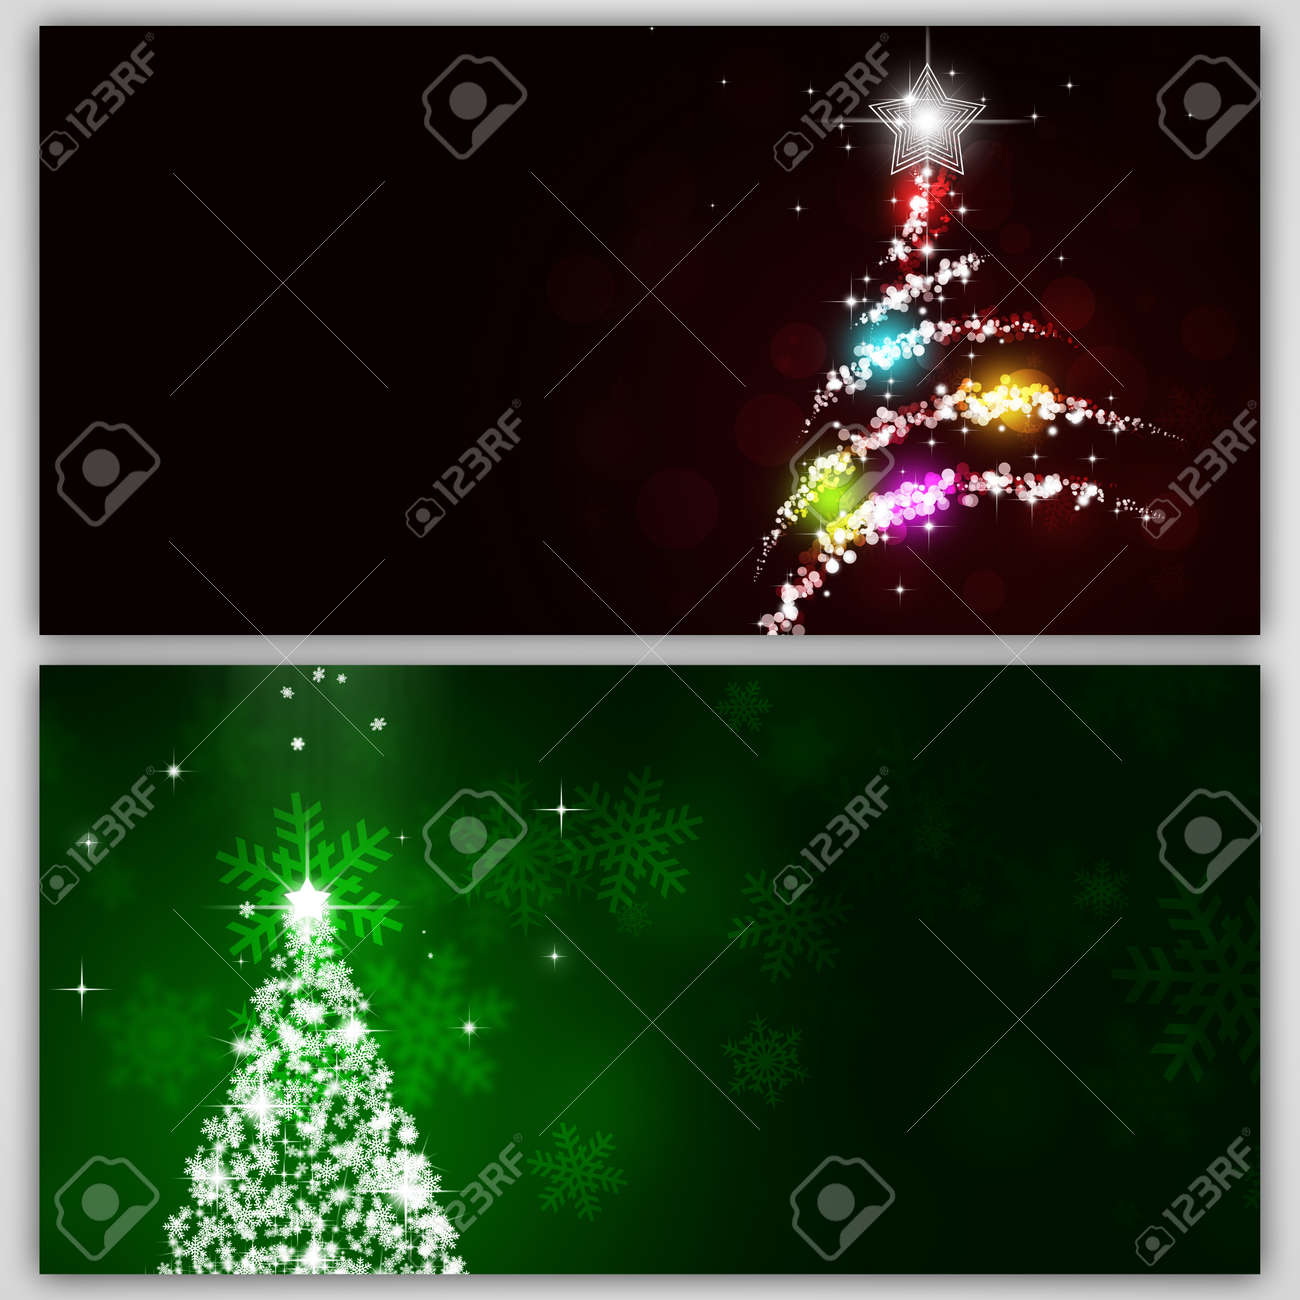 stock photo winter holiday snow tree banners for christmas and new year cards